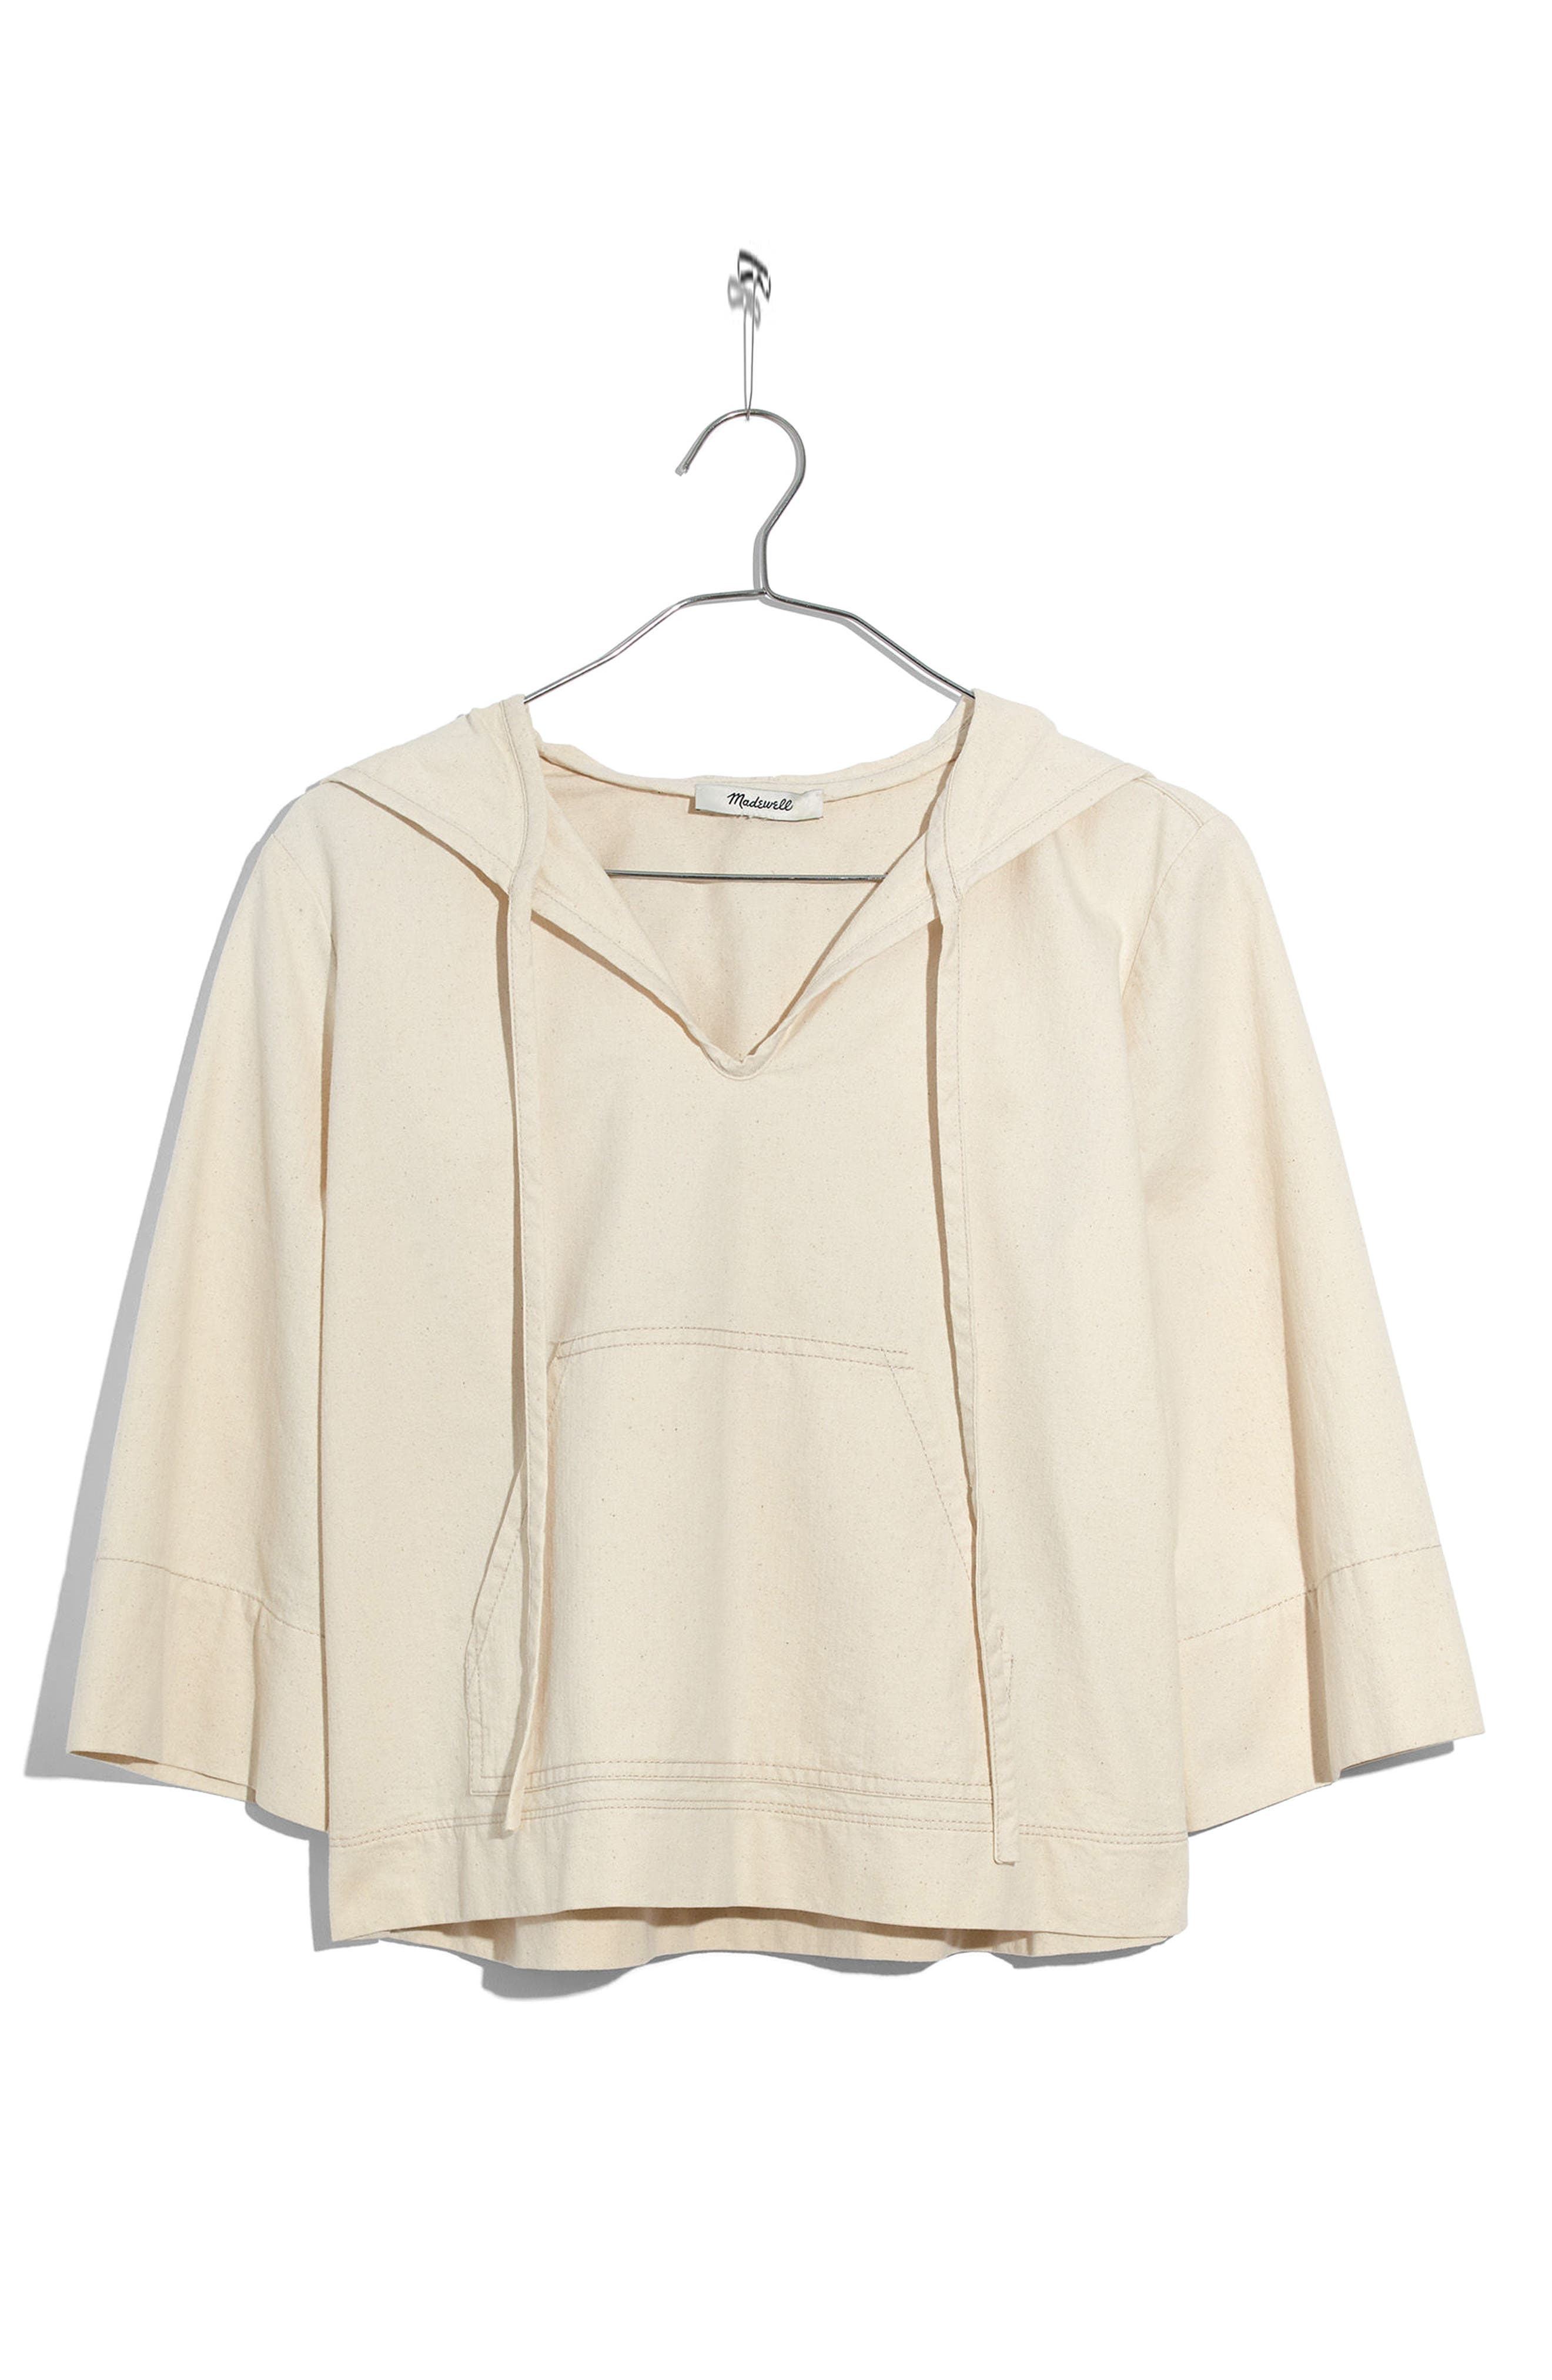 MADEWELL,                             Hooded Popover Top,                             Alternate thumbnail 4, color,                             100